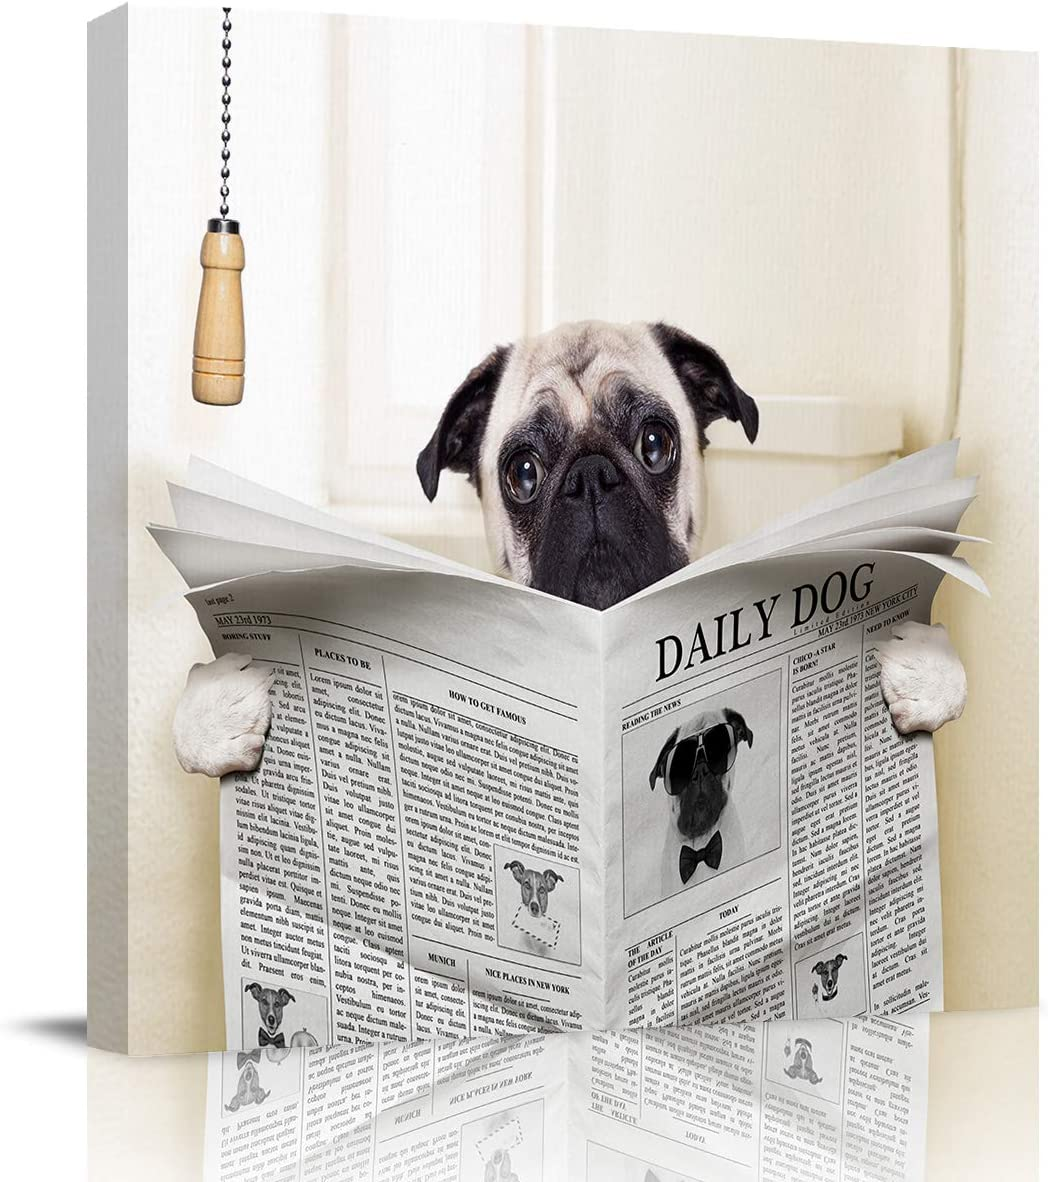 Square Oil Painting Wall Art on Decor Seattle Mall Canvas Department store Funny Pug for